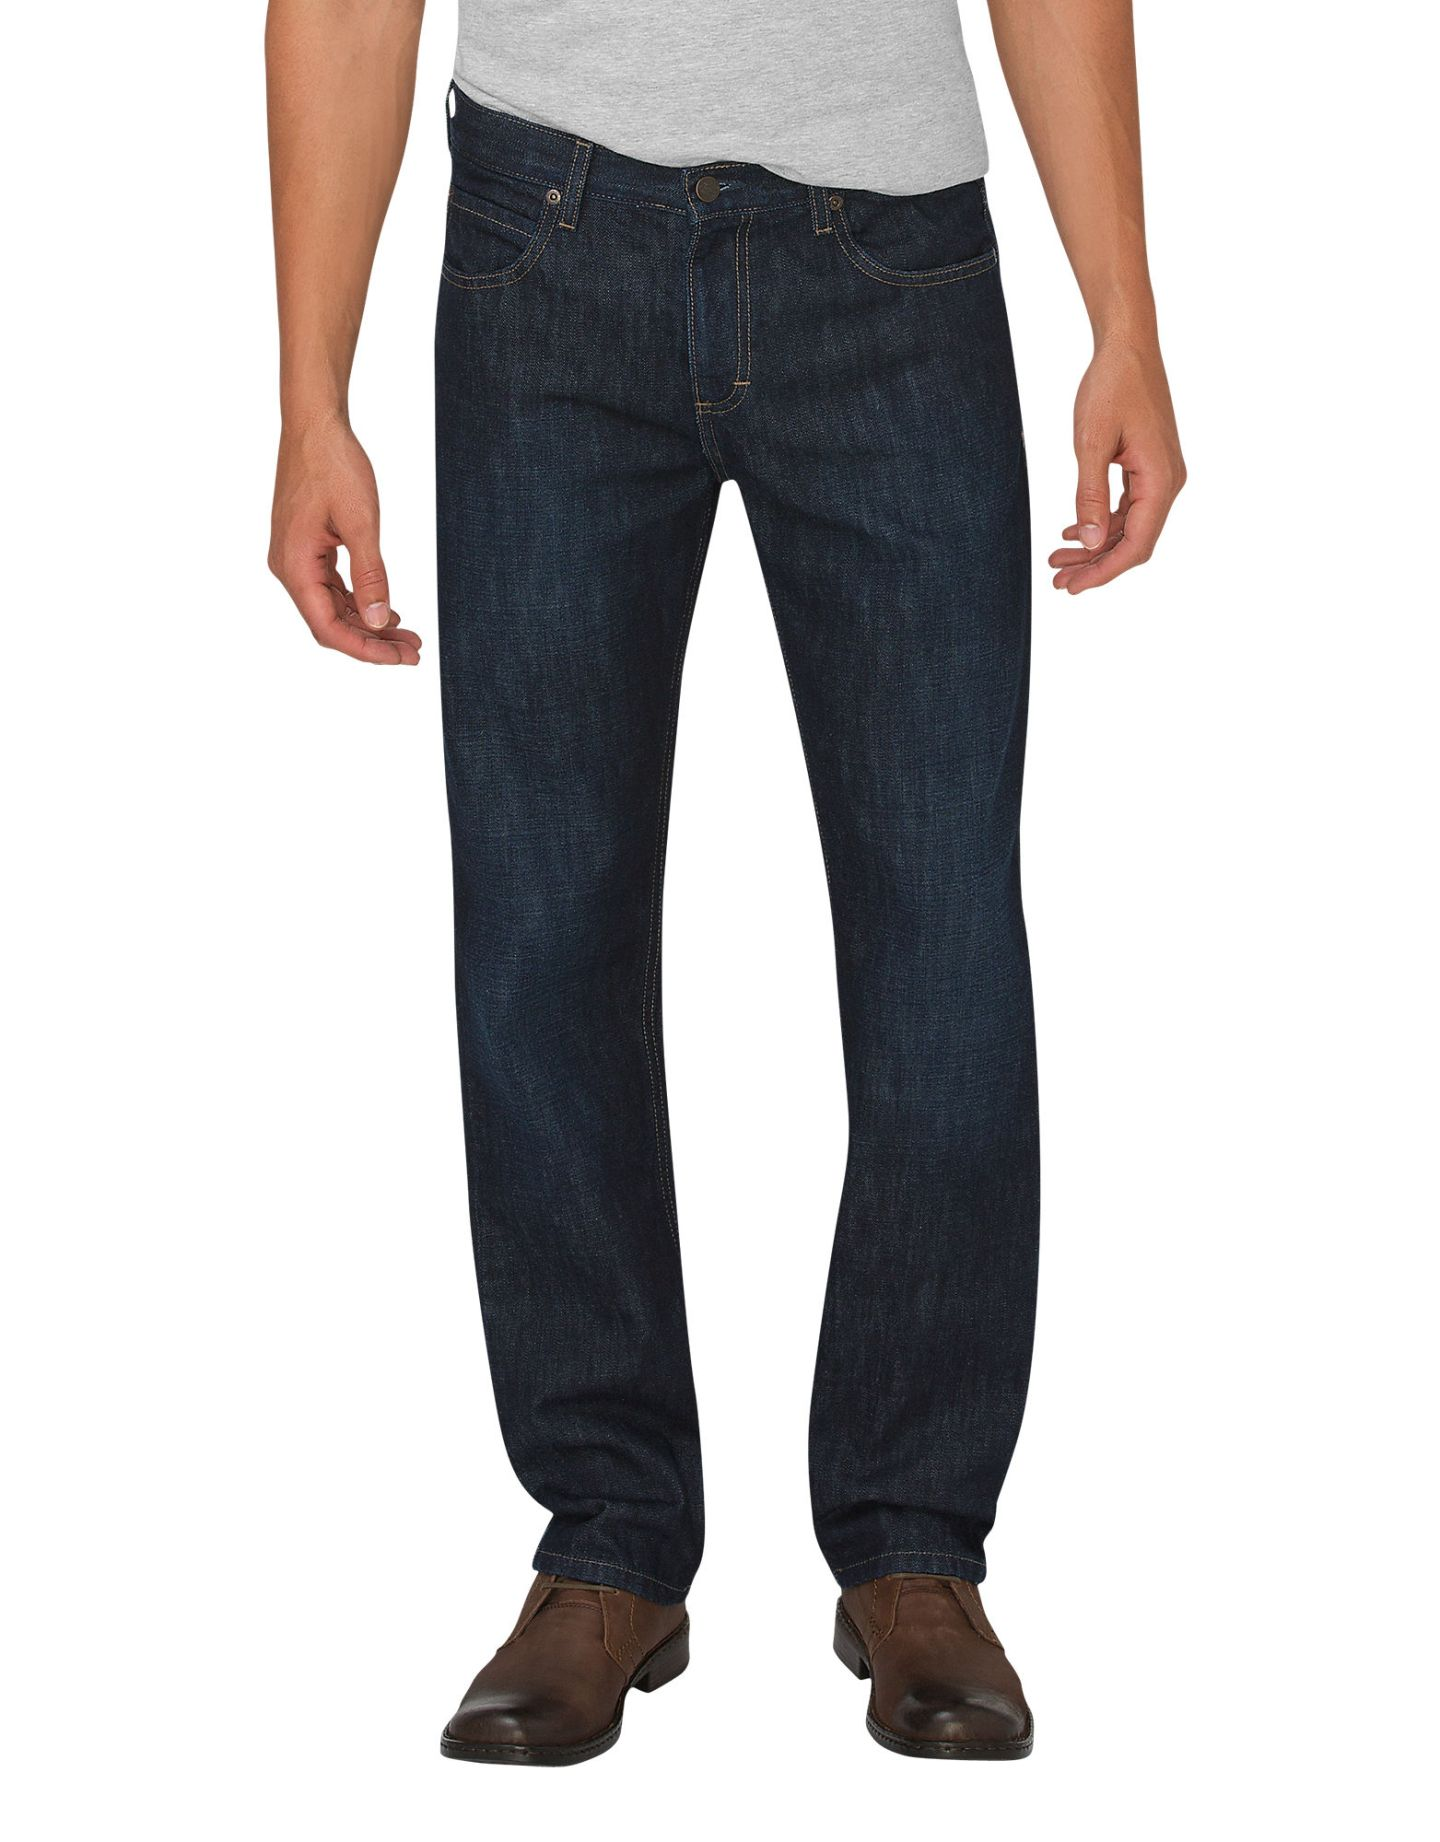 dickies-x-series-regular-fit-straight-leg-jeans